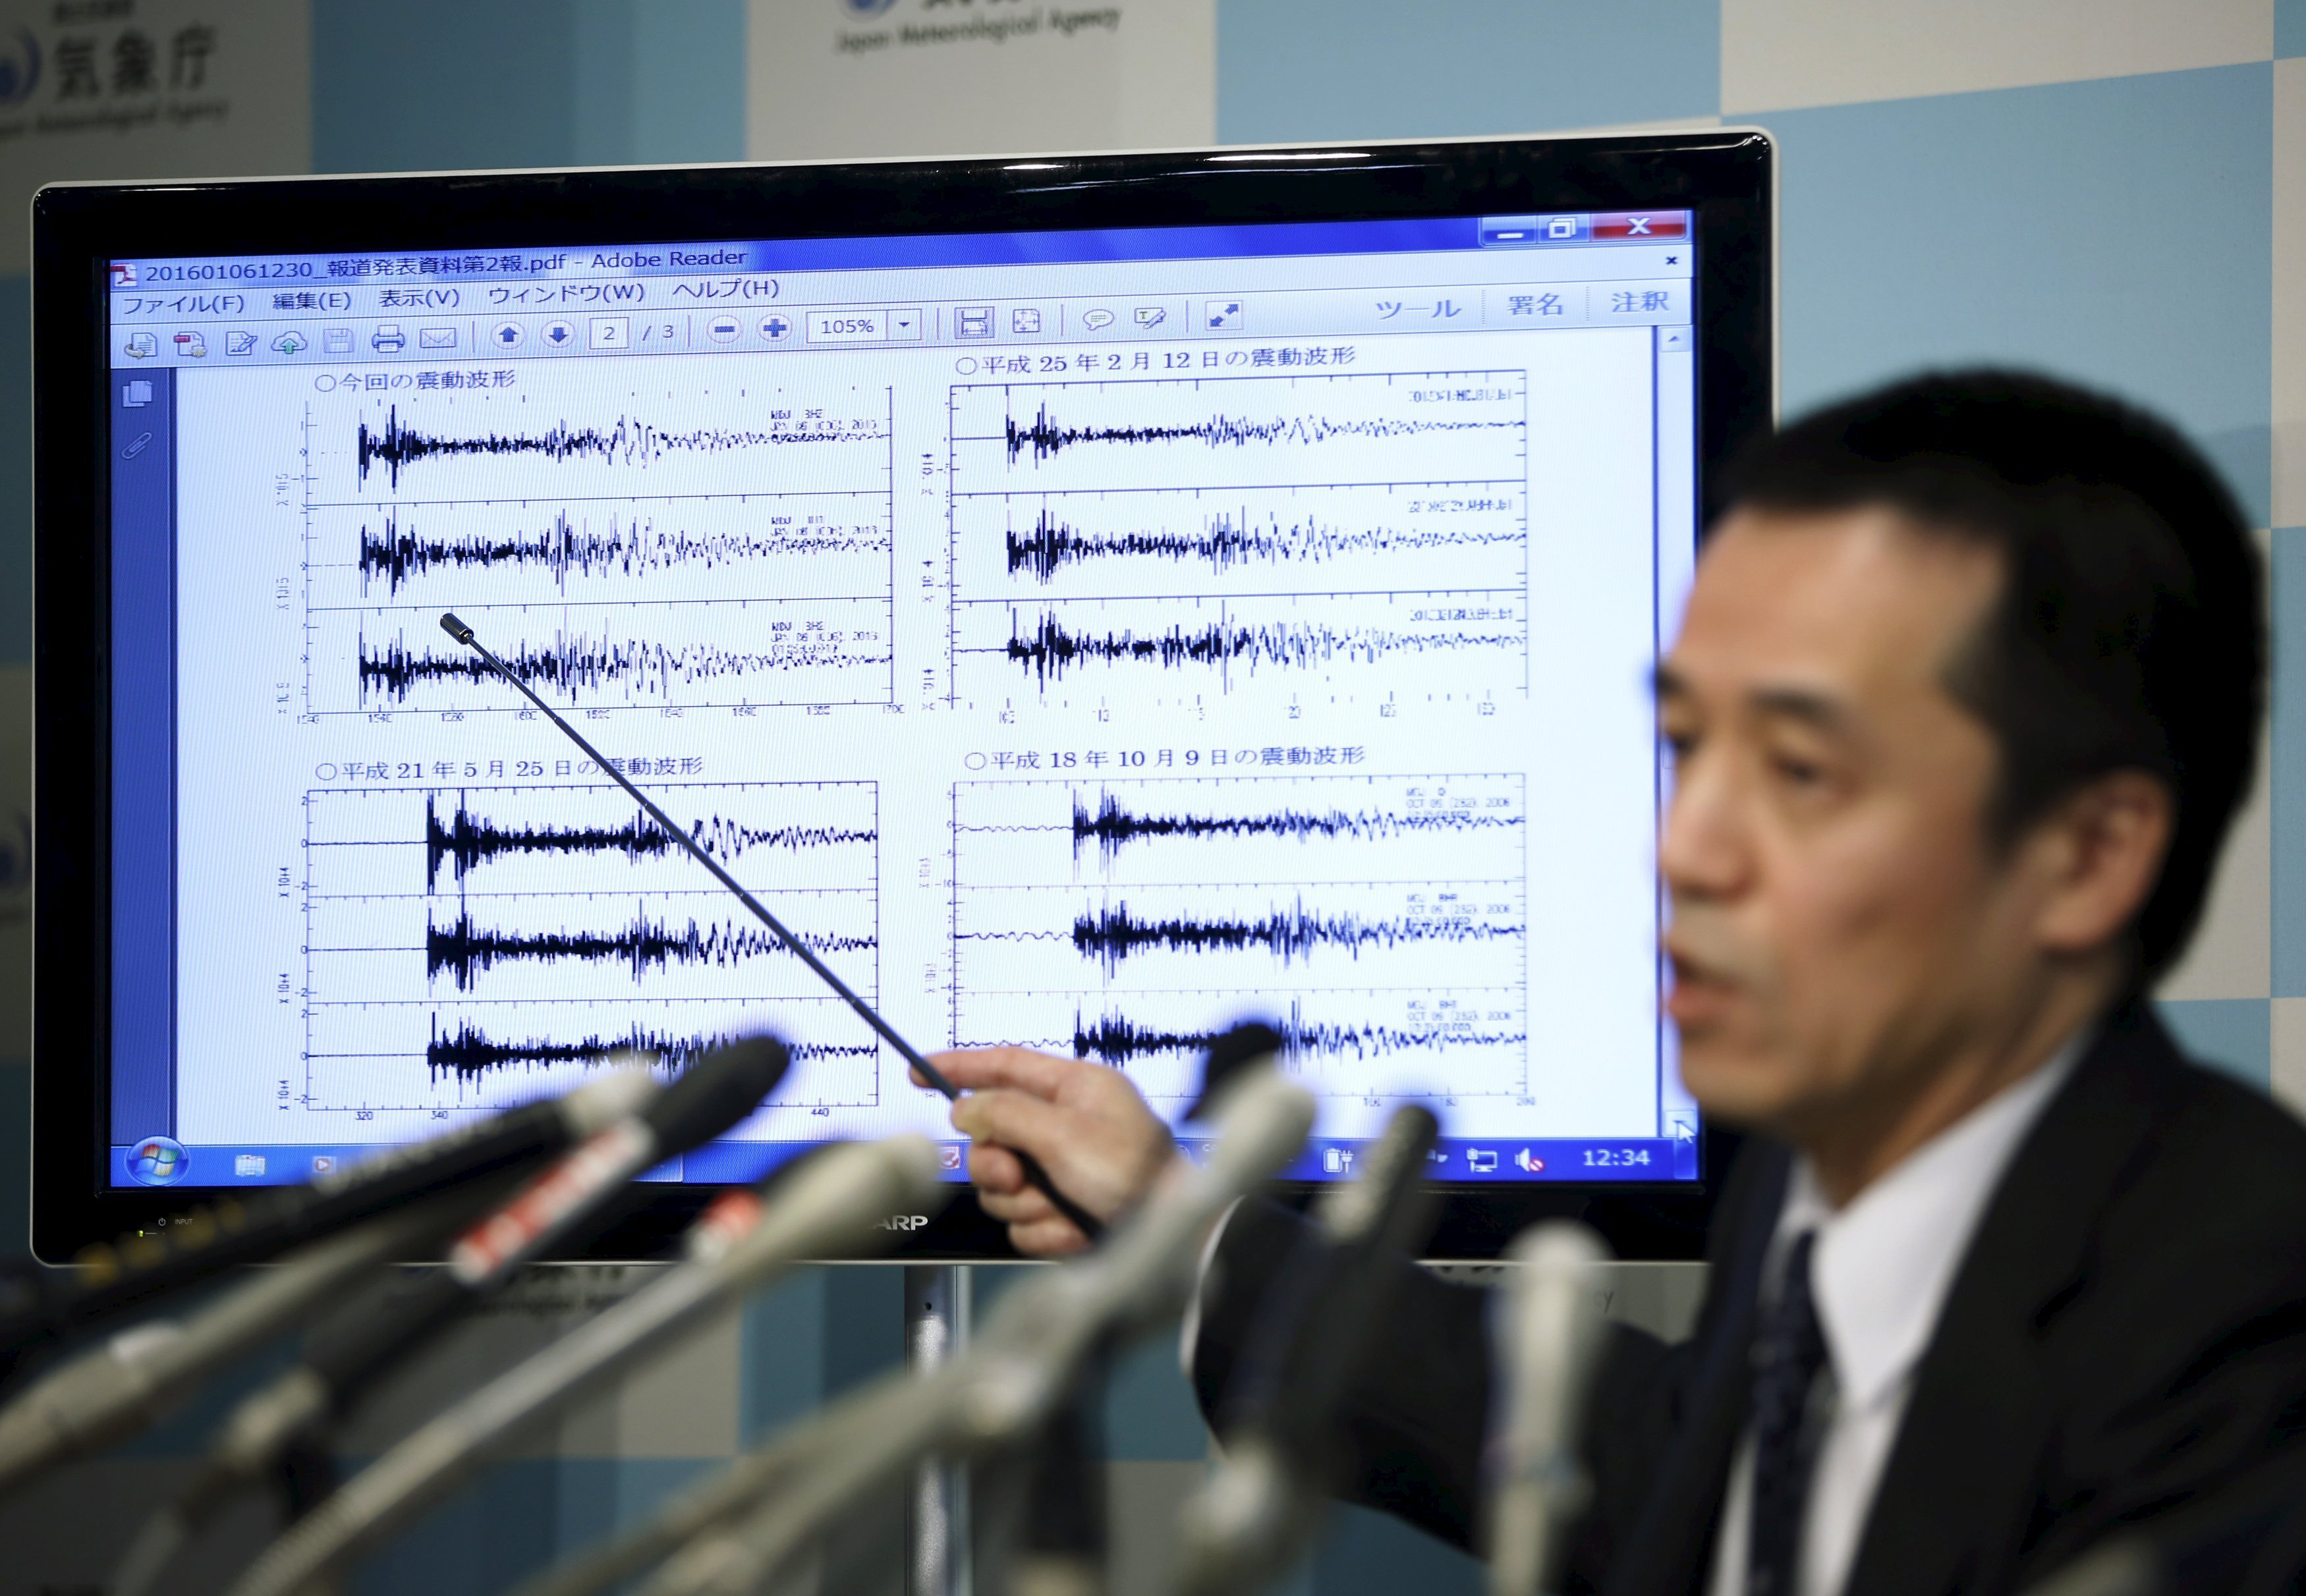 Hasegawa points at a graph of ground motion waveform data observed in Japan during a news conference at the Japan Meteorological Agency in Tokyo